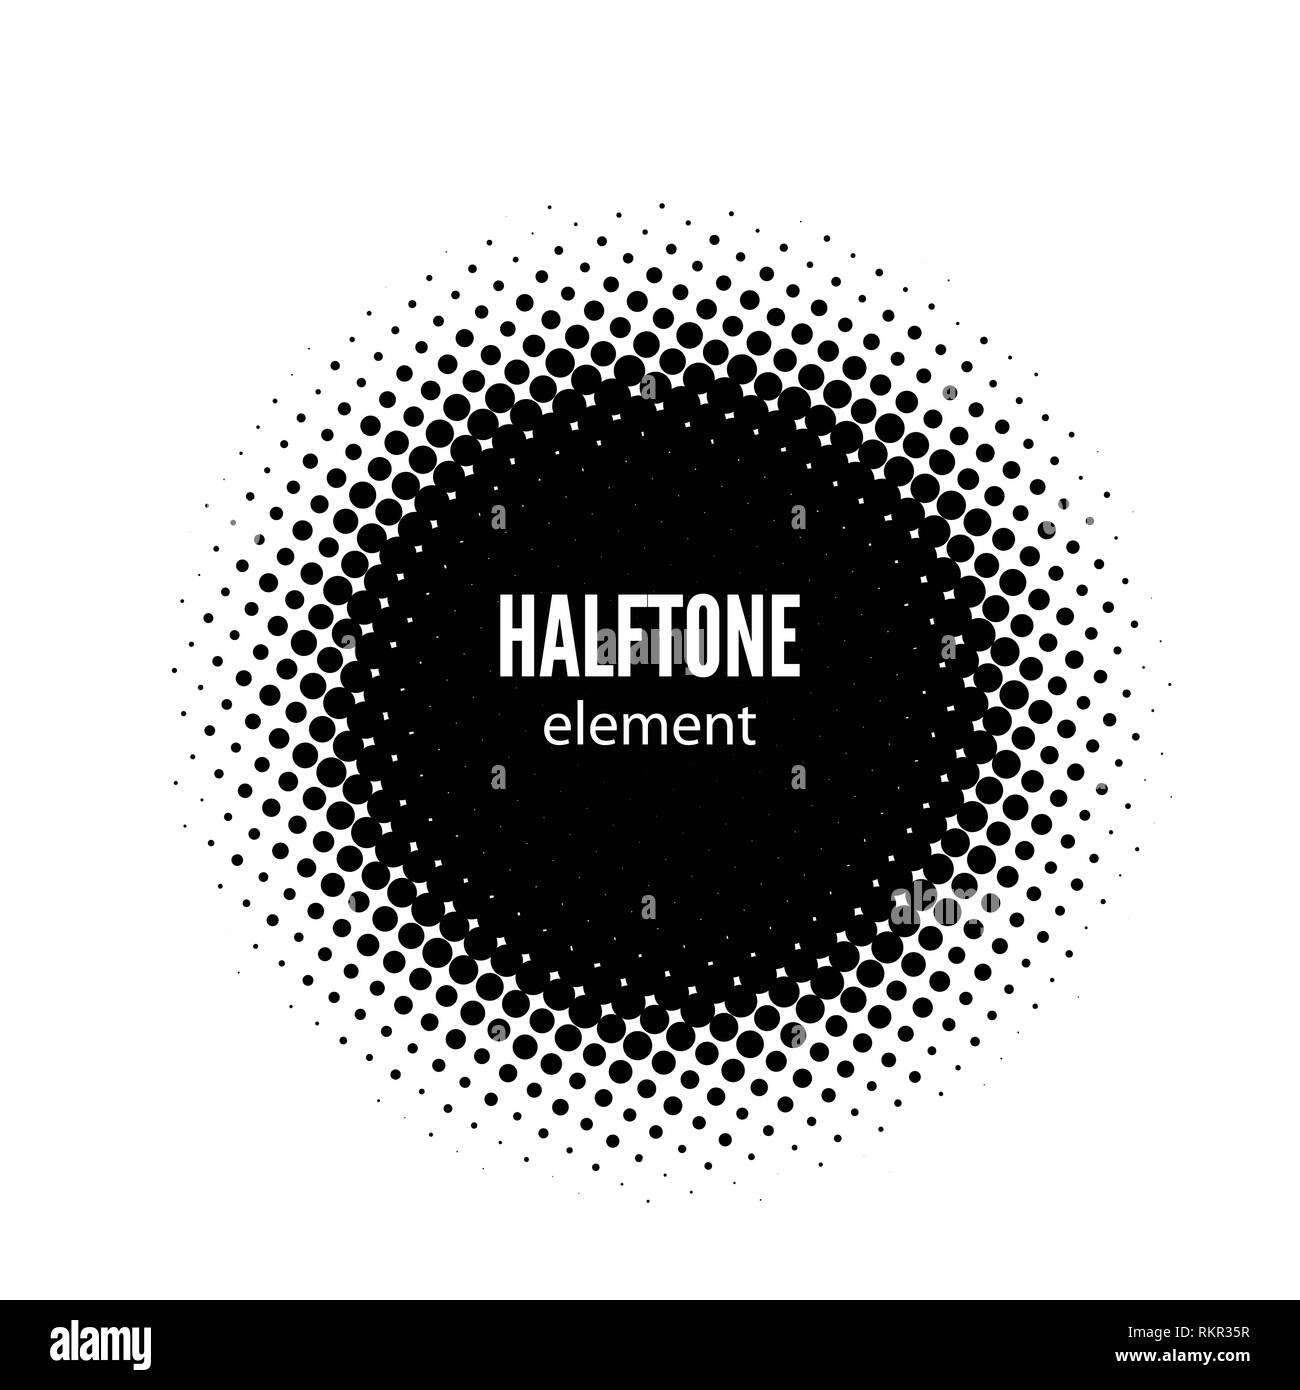 abstract halftone vector design element. Black dots frame Stock Vector